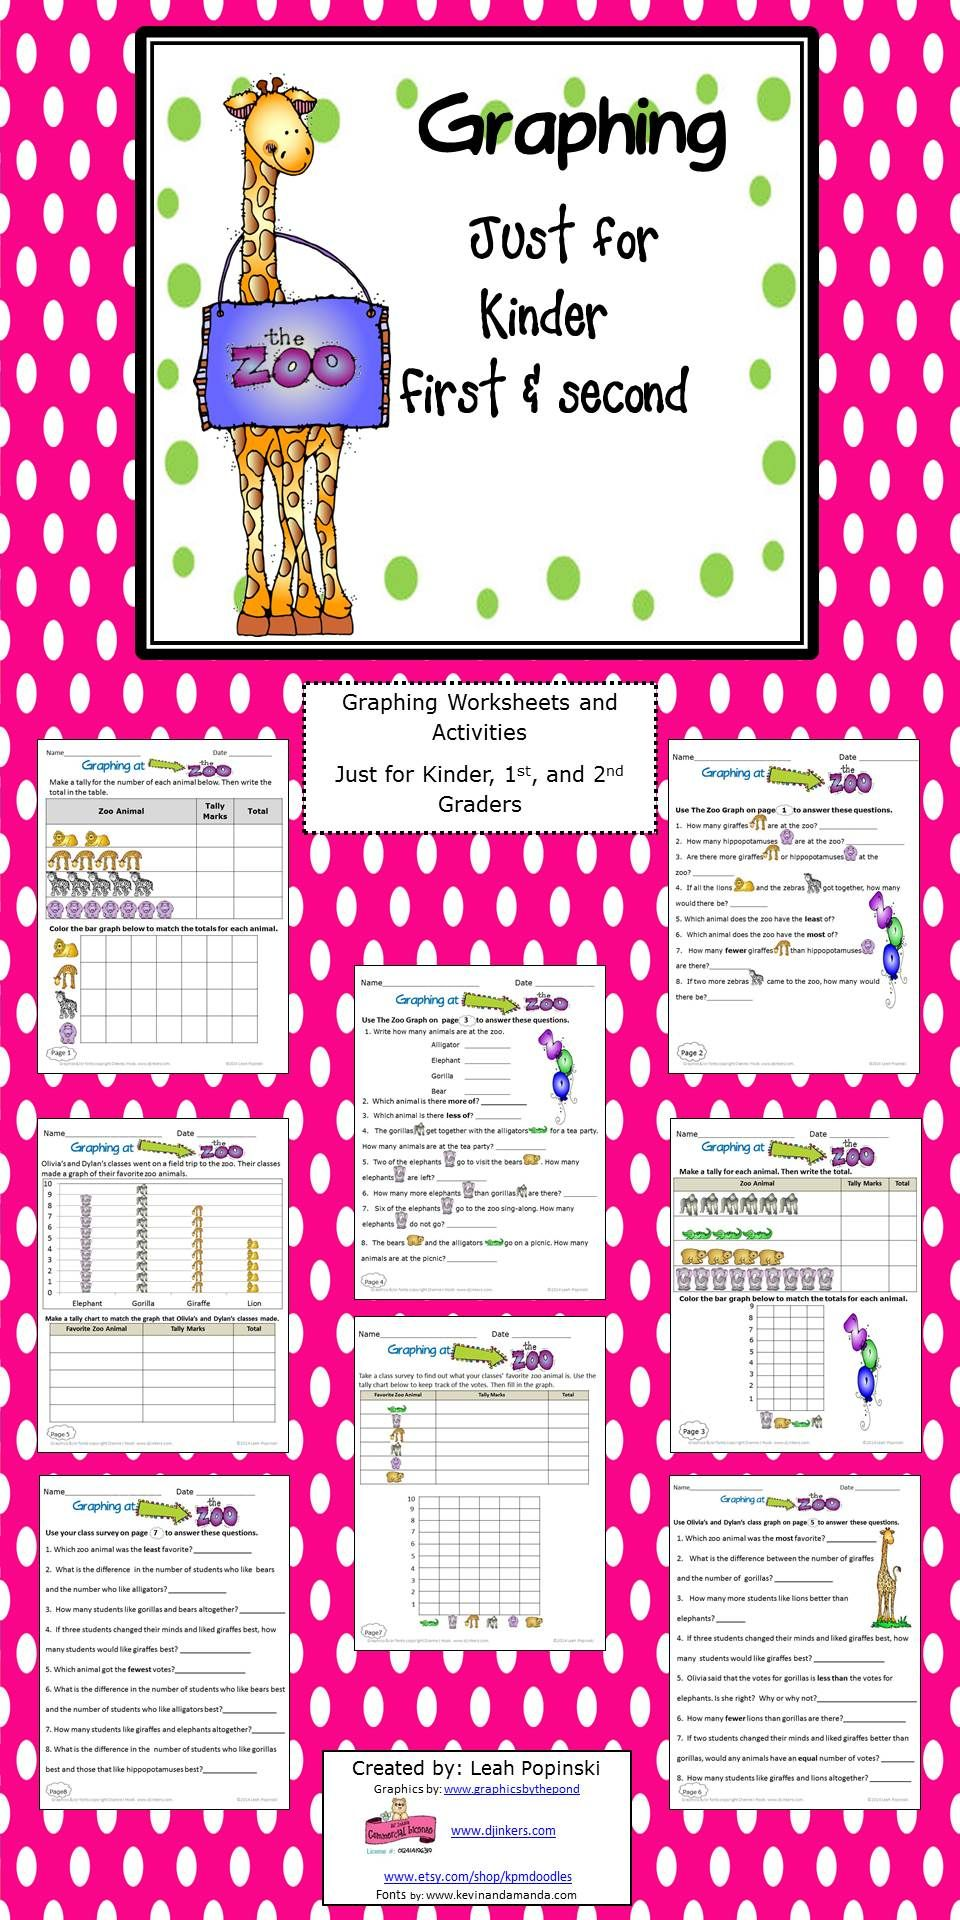 Activities And Worksheets To Strengthen And Practice Graphing Skills With A Fun Zoo Theme Adorable Graphics Graphing Activities Math Activities Math Classroom [ 1920 x 960 Pixel ]